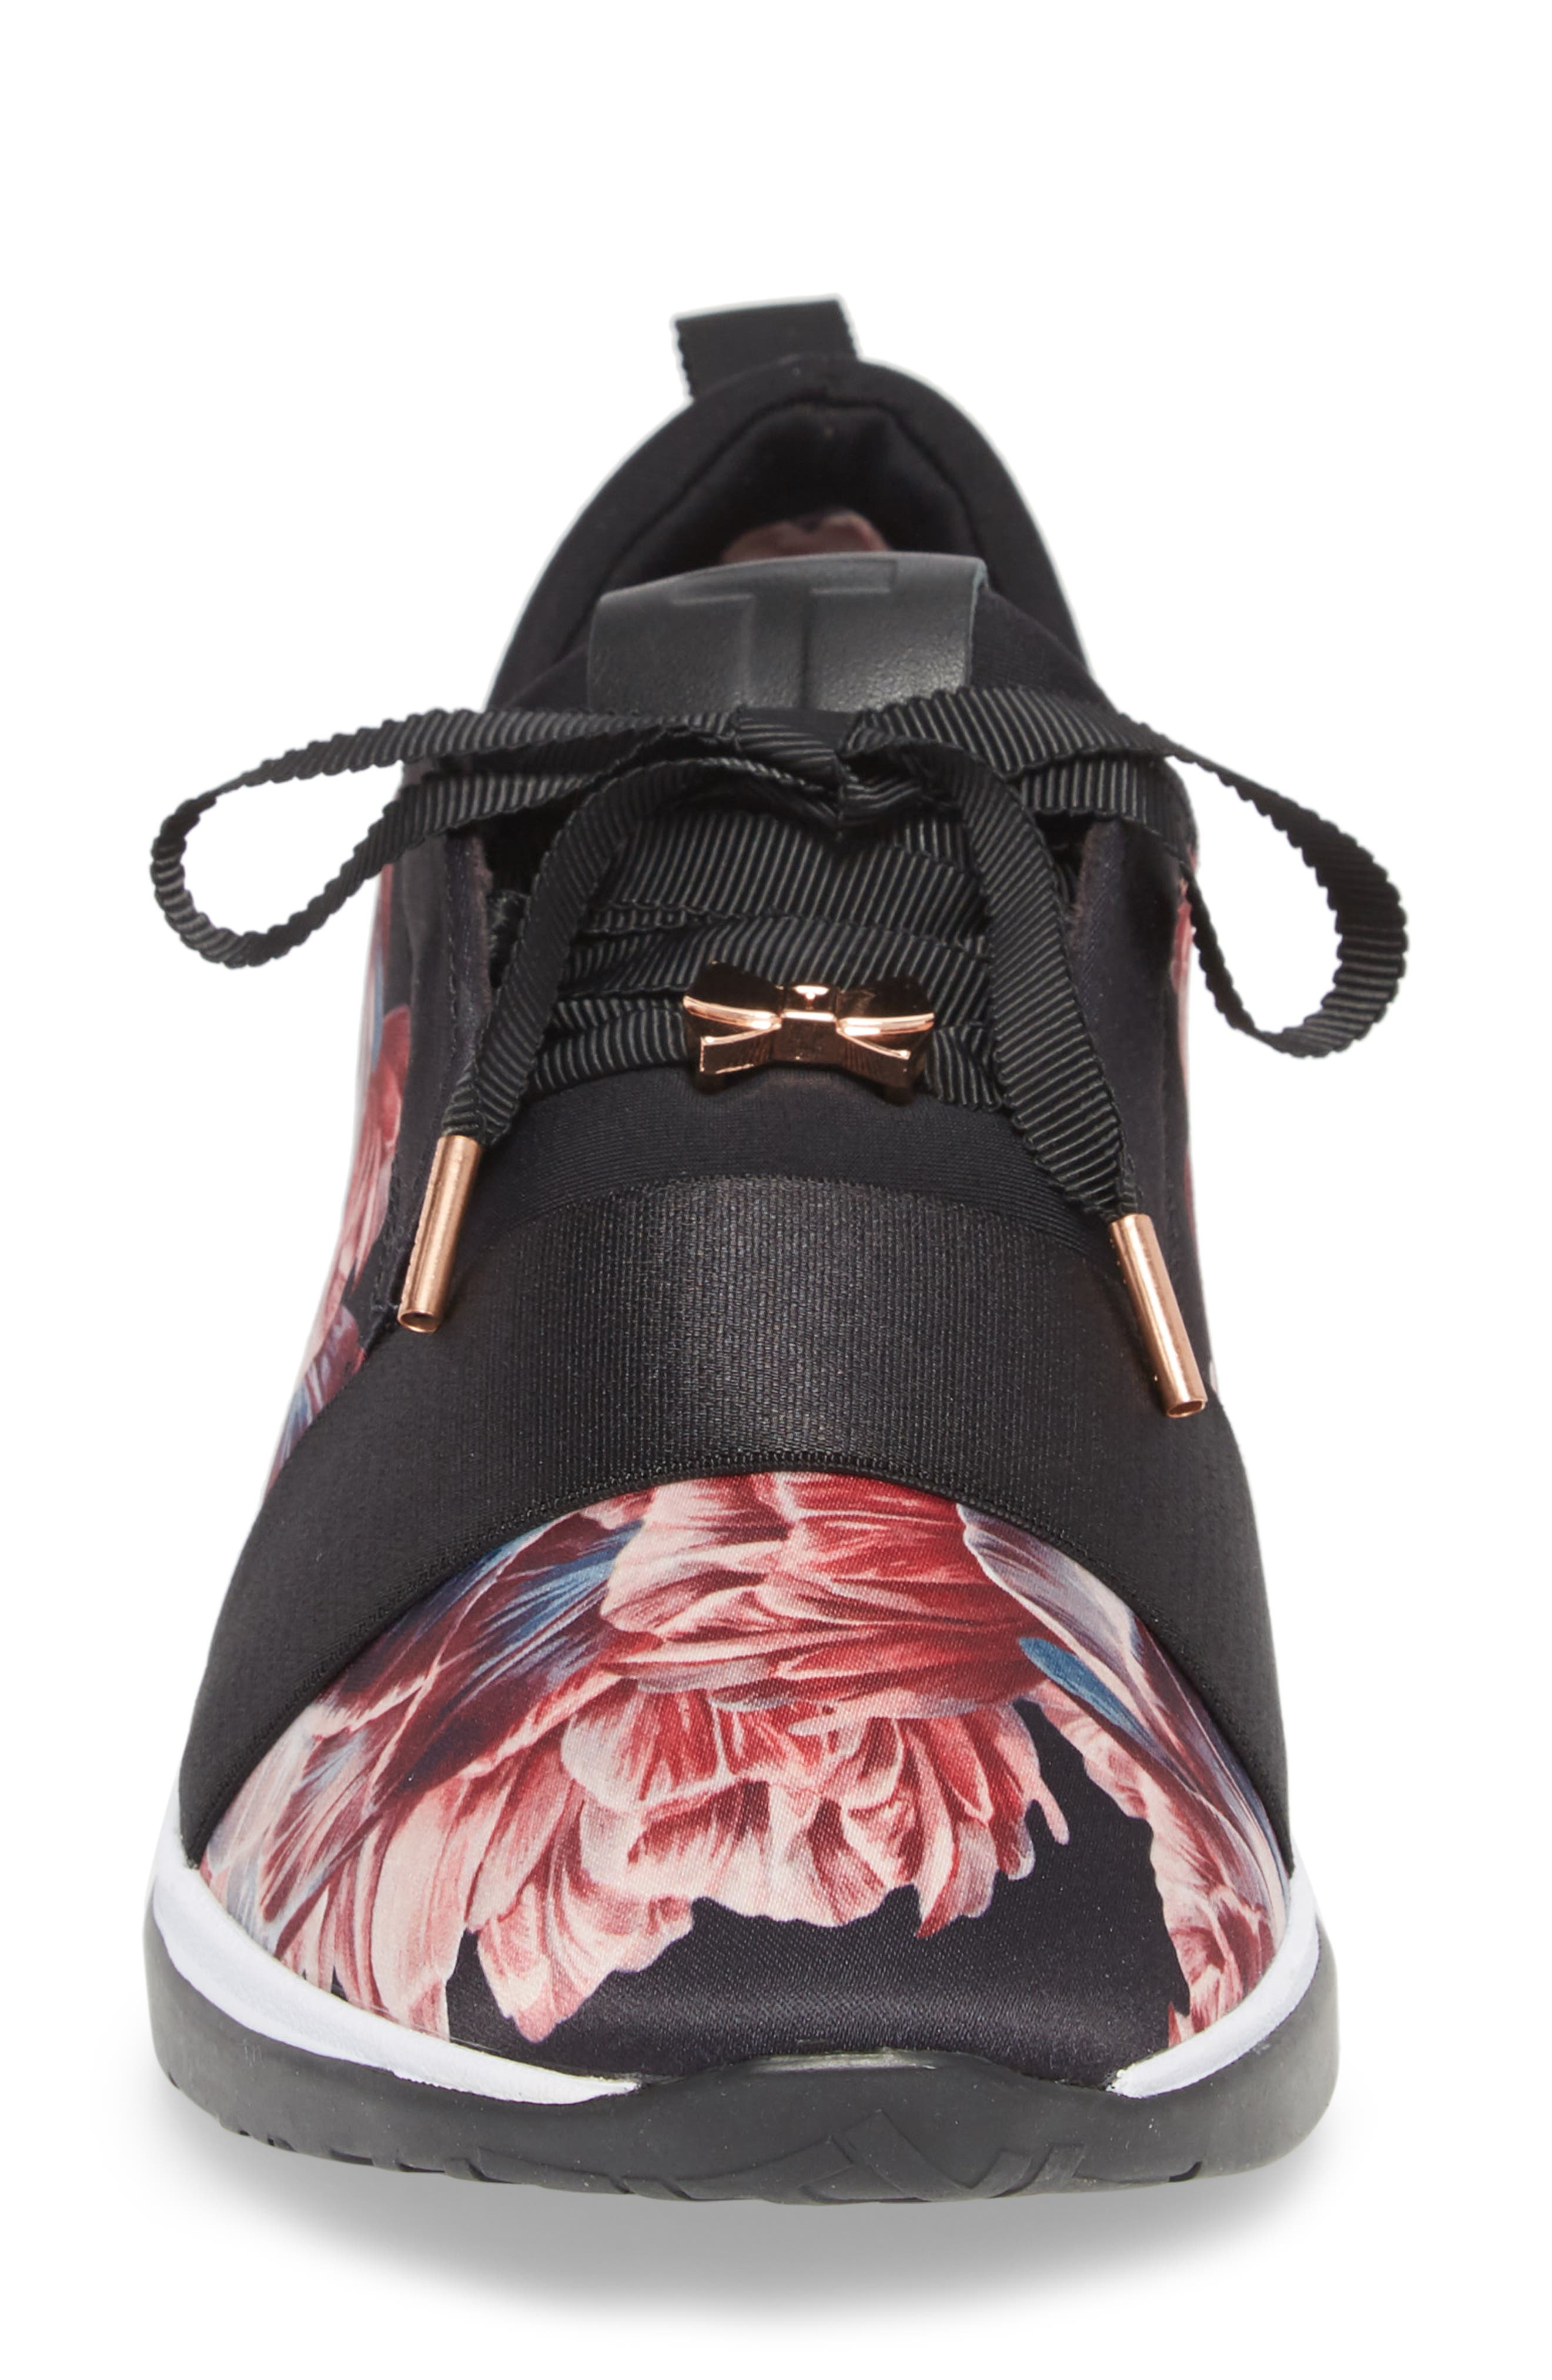 Cepap Sneaker,                             Alternate thumbnail 4, color,                             Tranquility Fabric